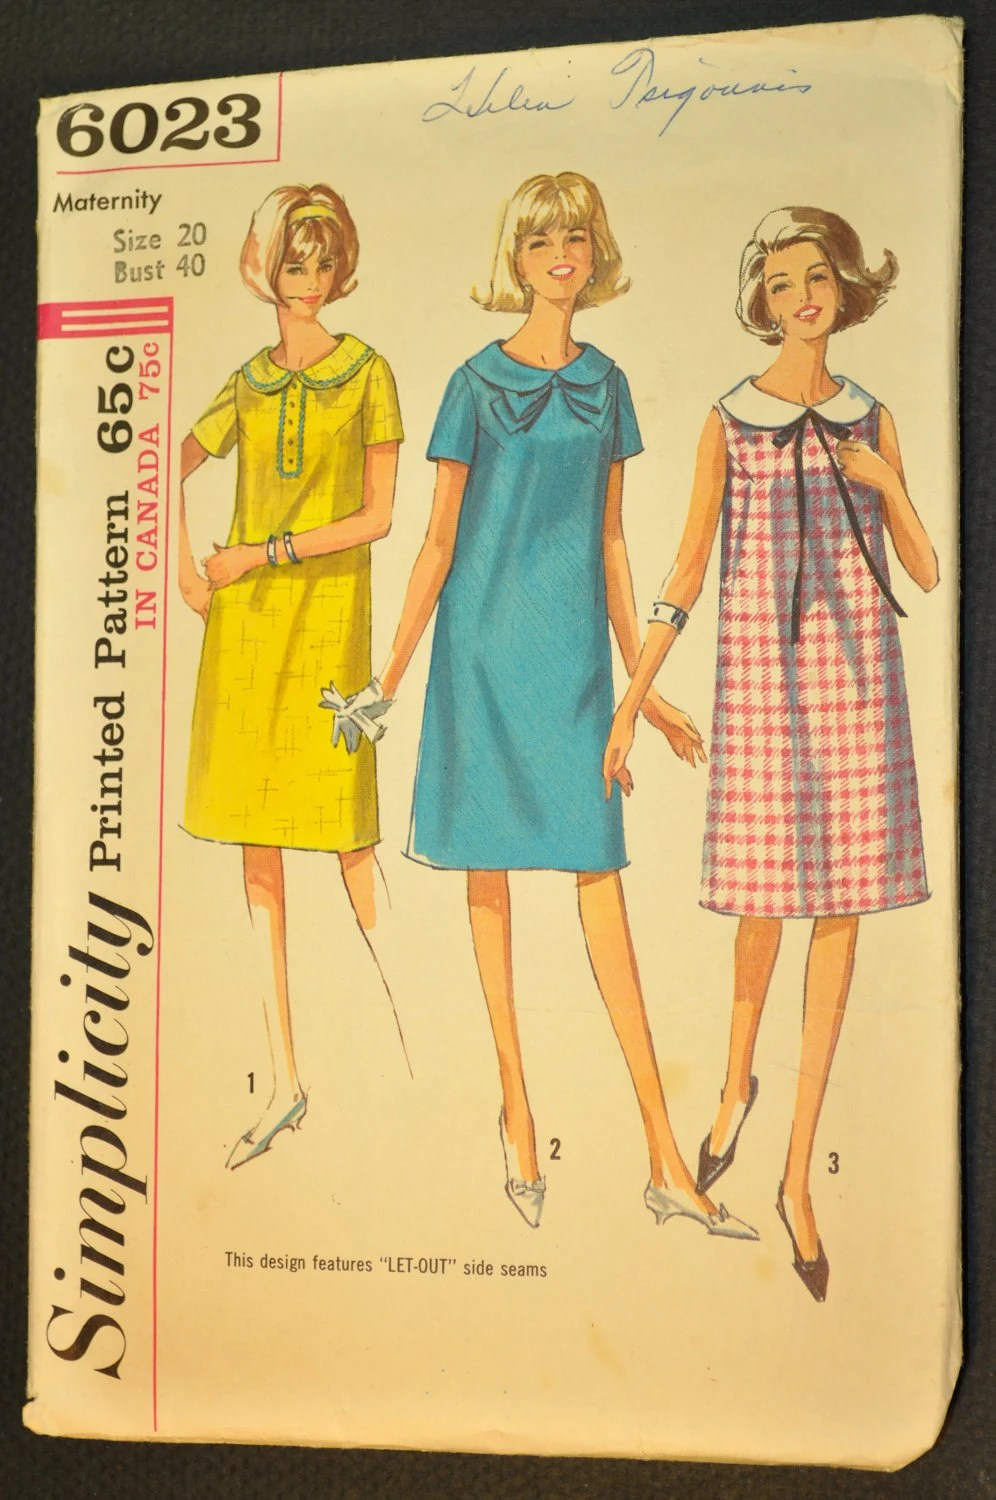 Maternity One-Piece Dress in Misses' Sizes, Vintage 1965 Sewing Pattern- Simplicity 6023